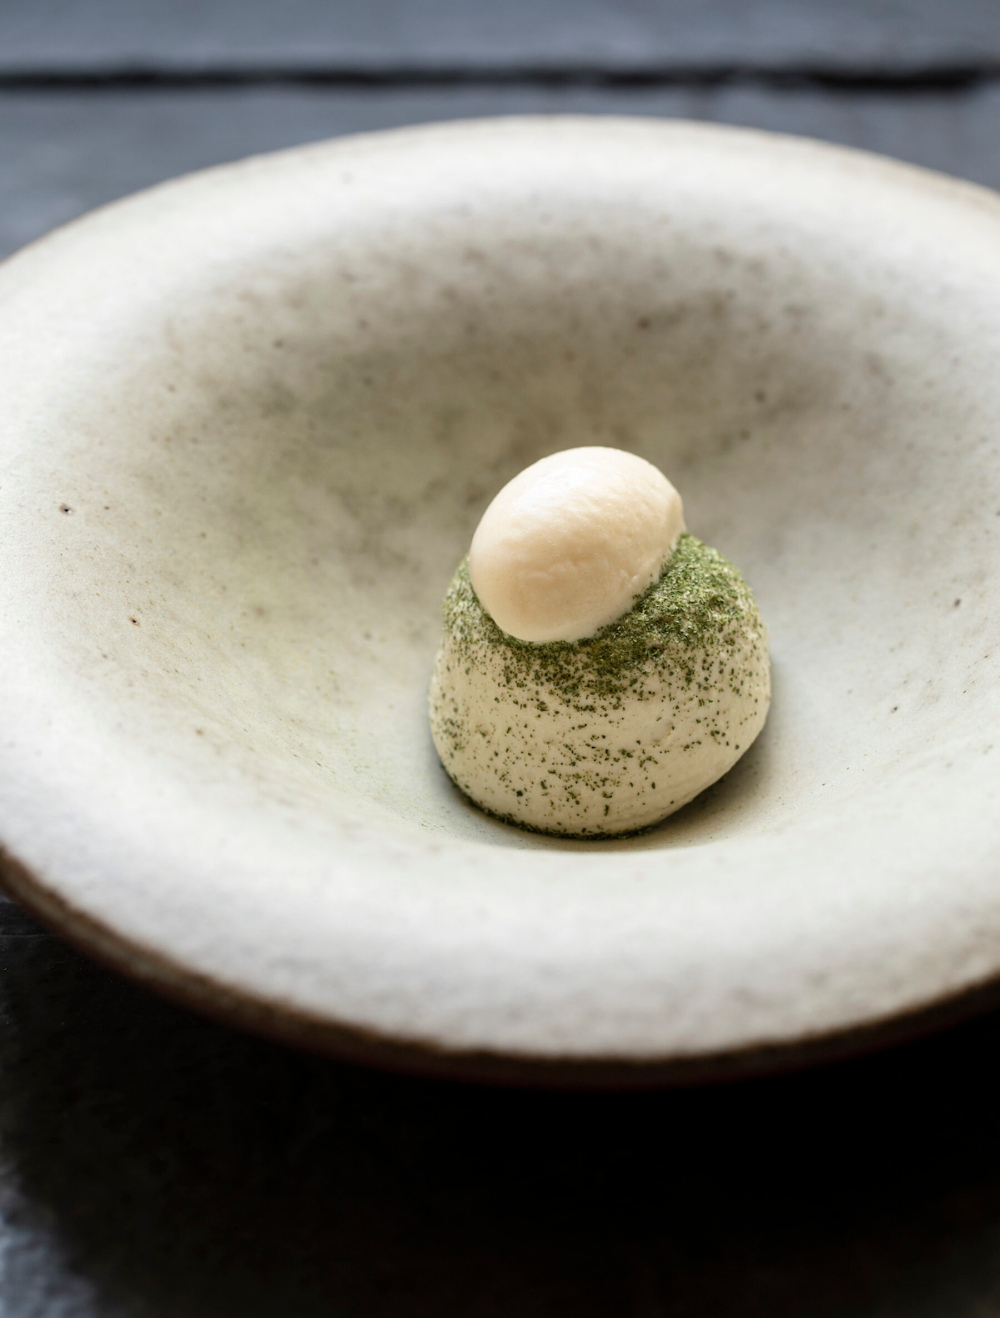 Pin by Evelyn Ling on plating Michelin star dessert